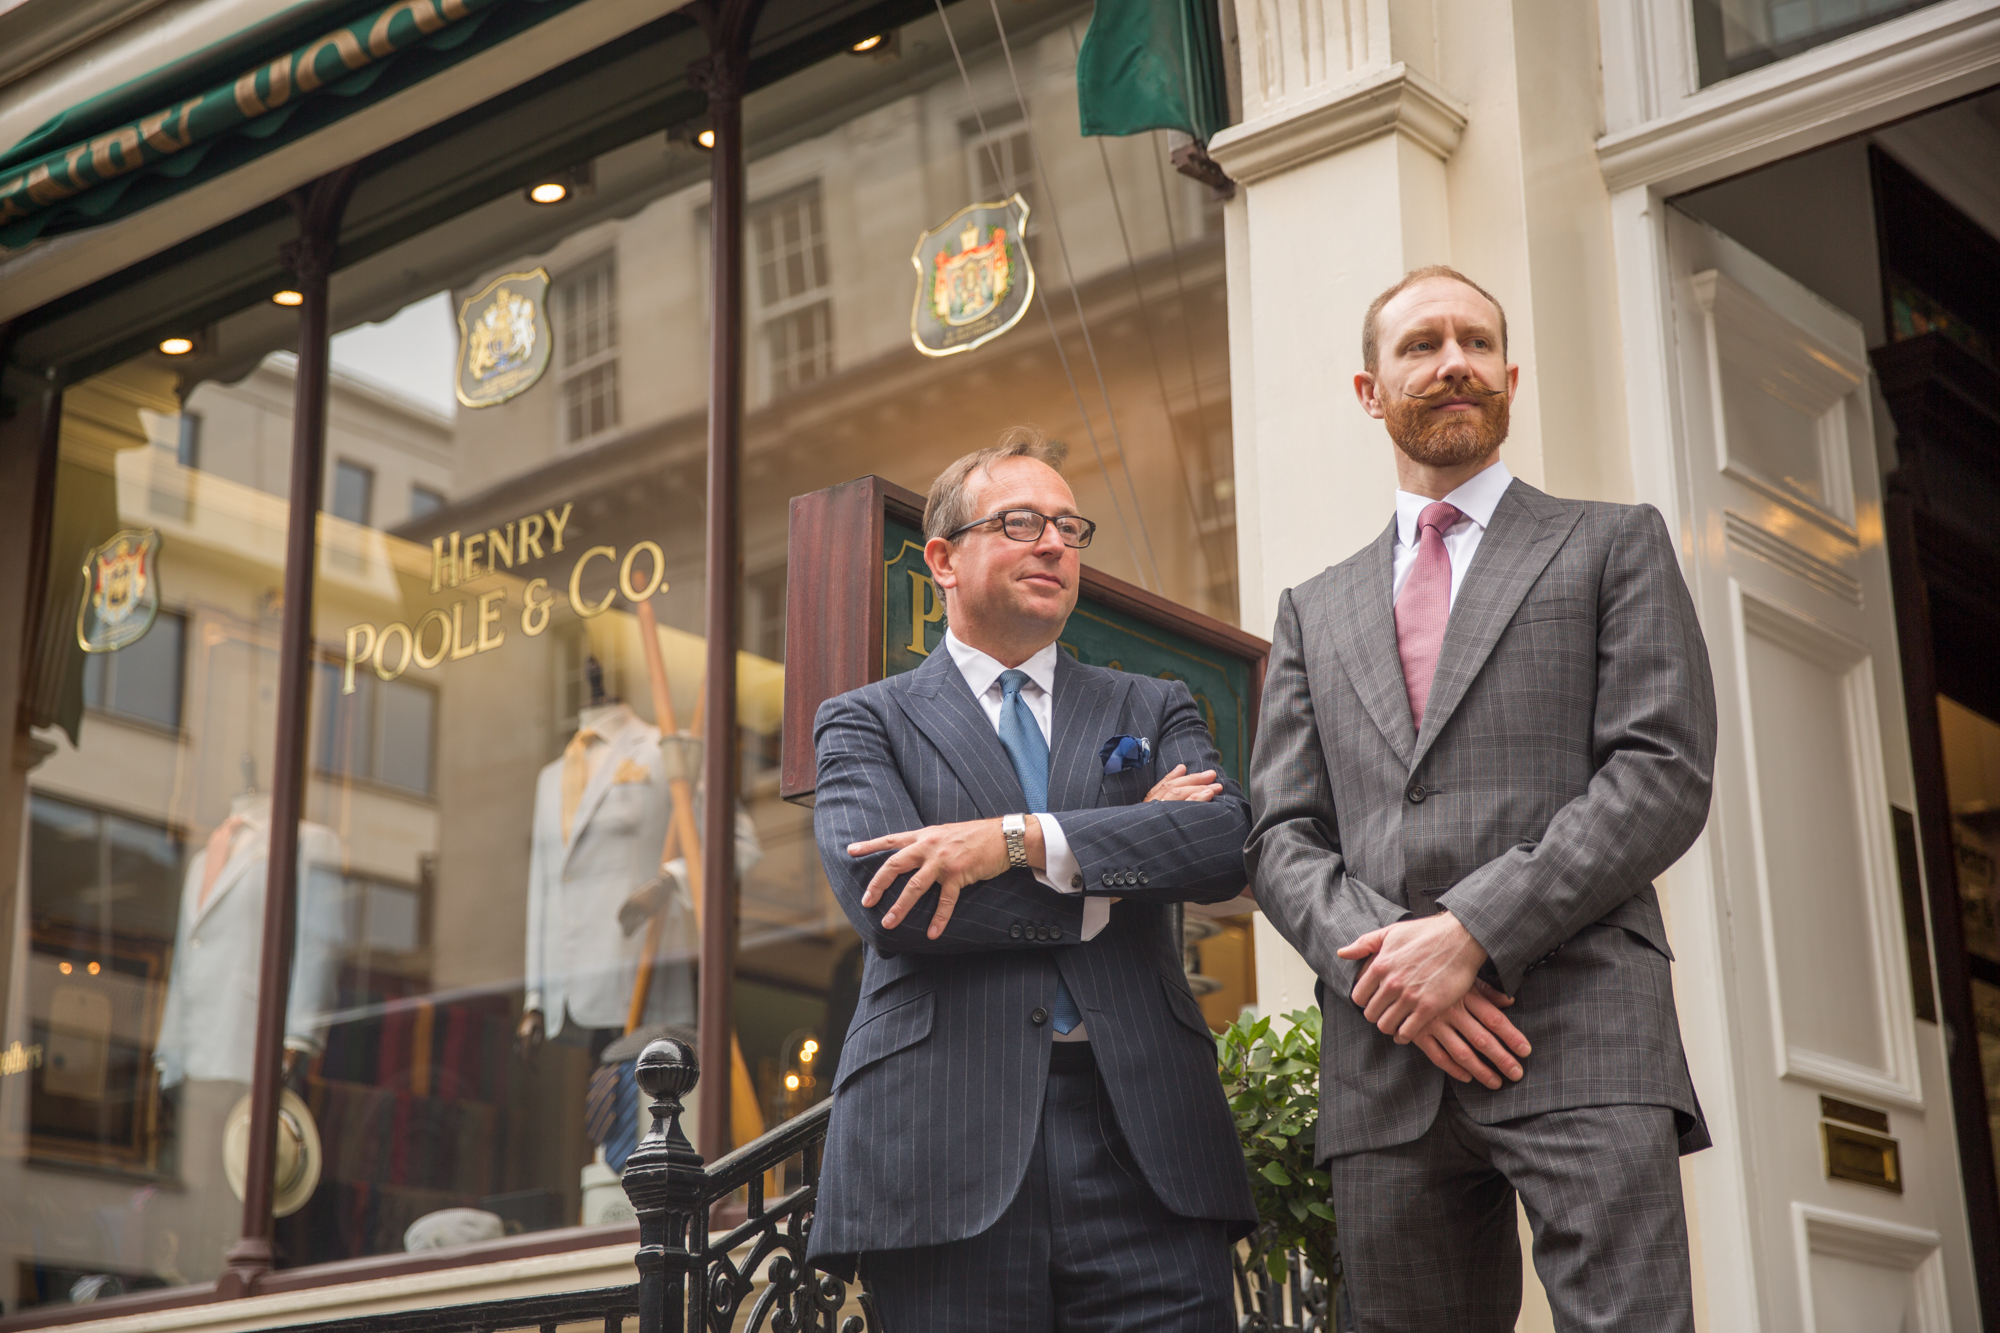 28.6.2018 - Legends of Savile Row - with Henry Poole & Co.